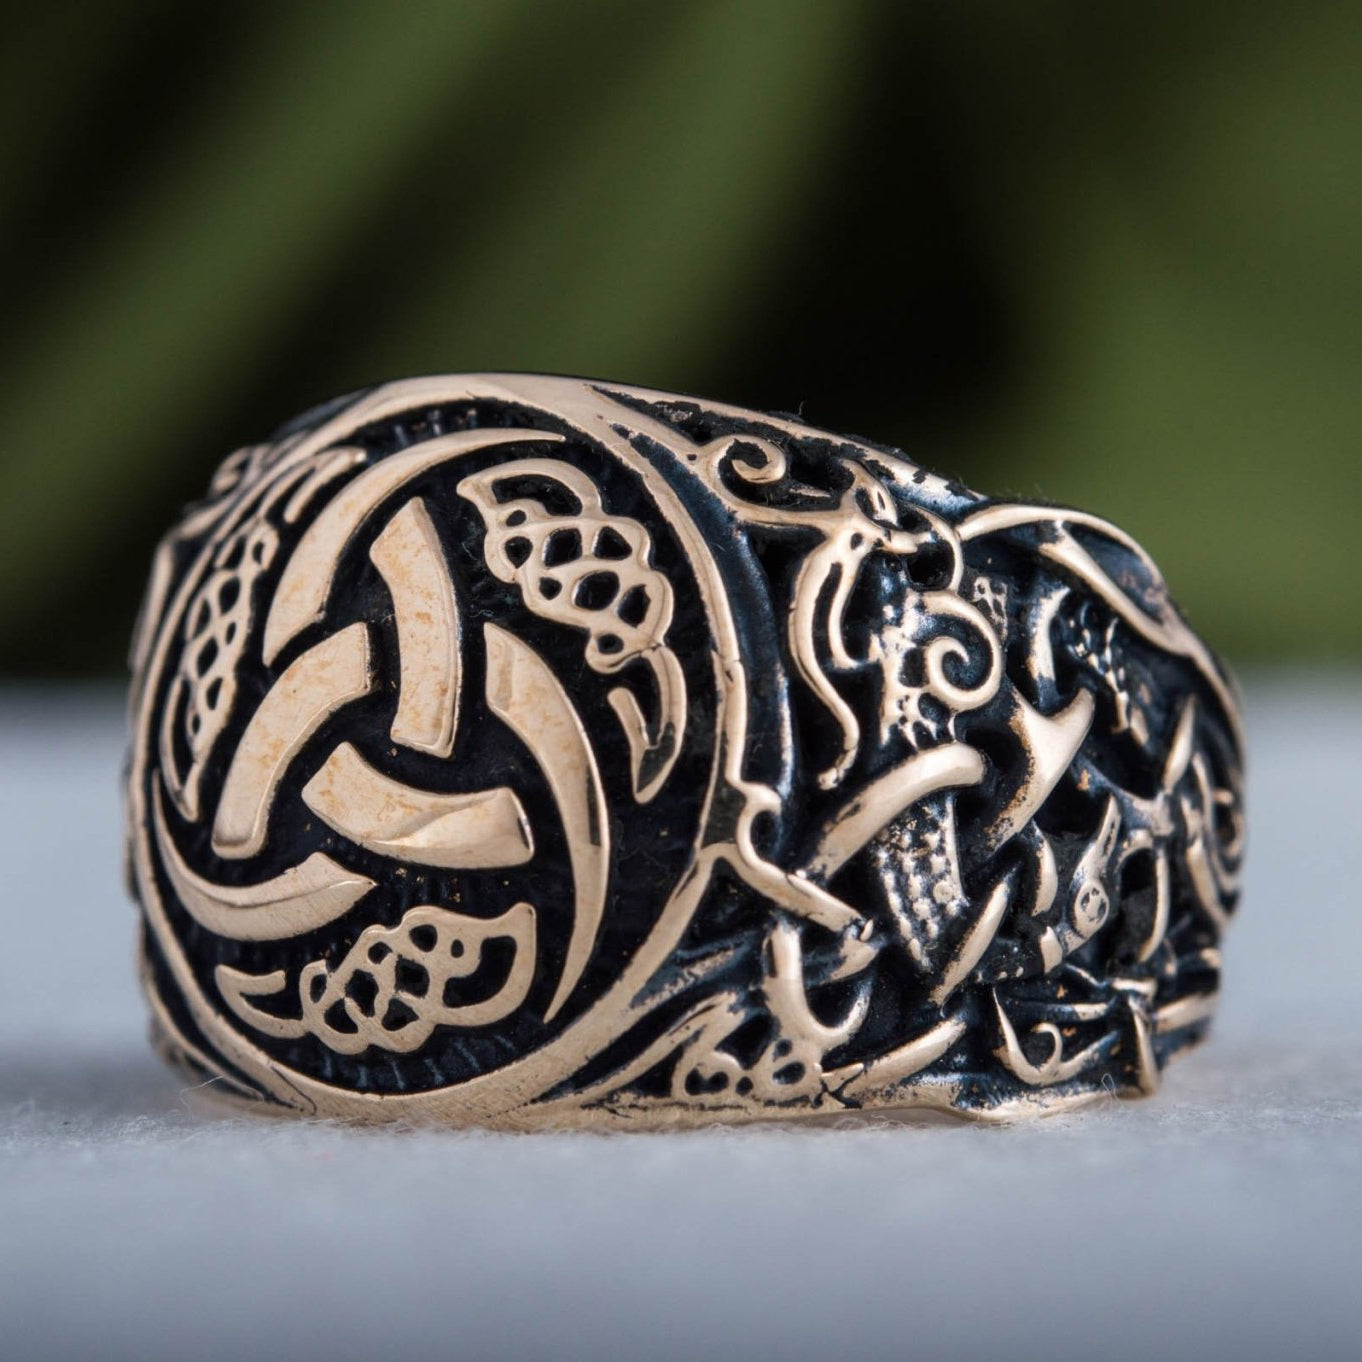 Triple Horn of Odin Bronze Viking Ring with Mammen Ornament